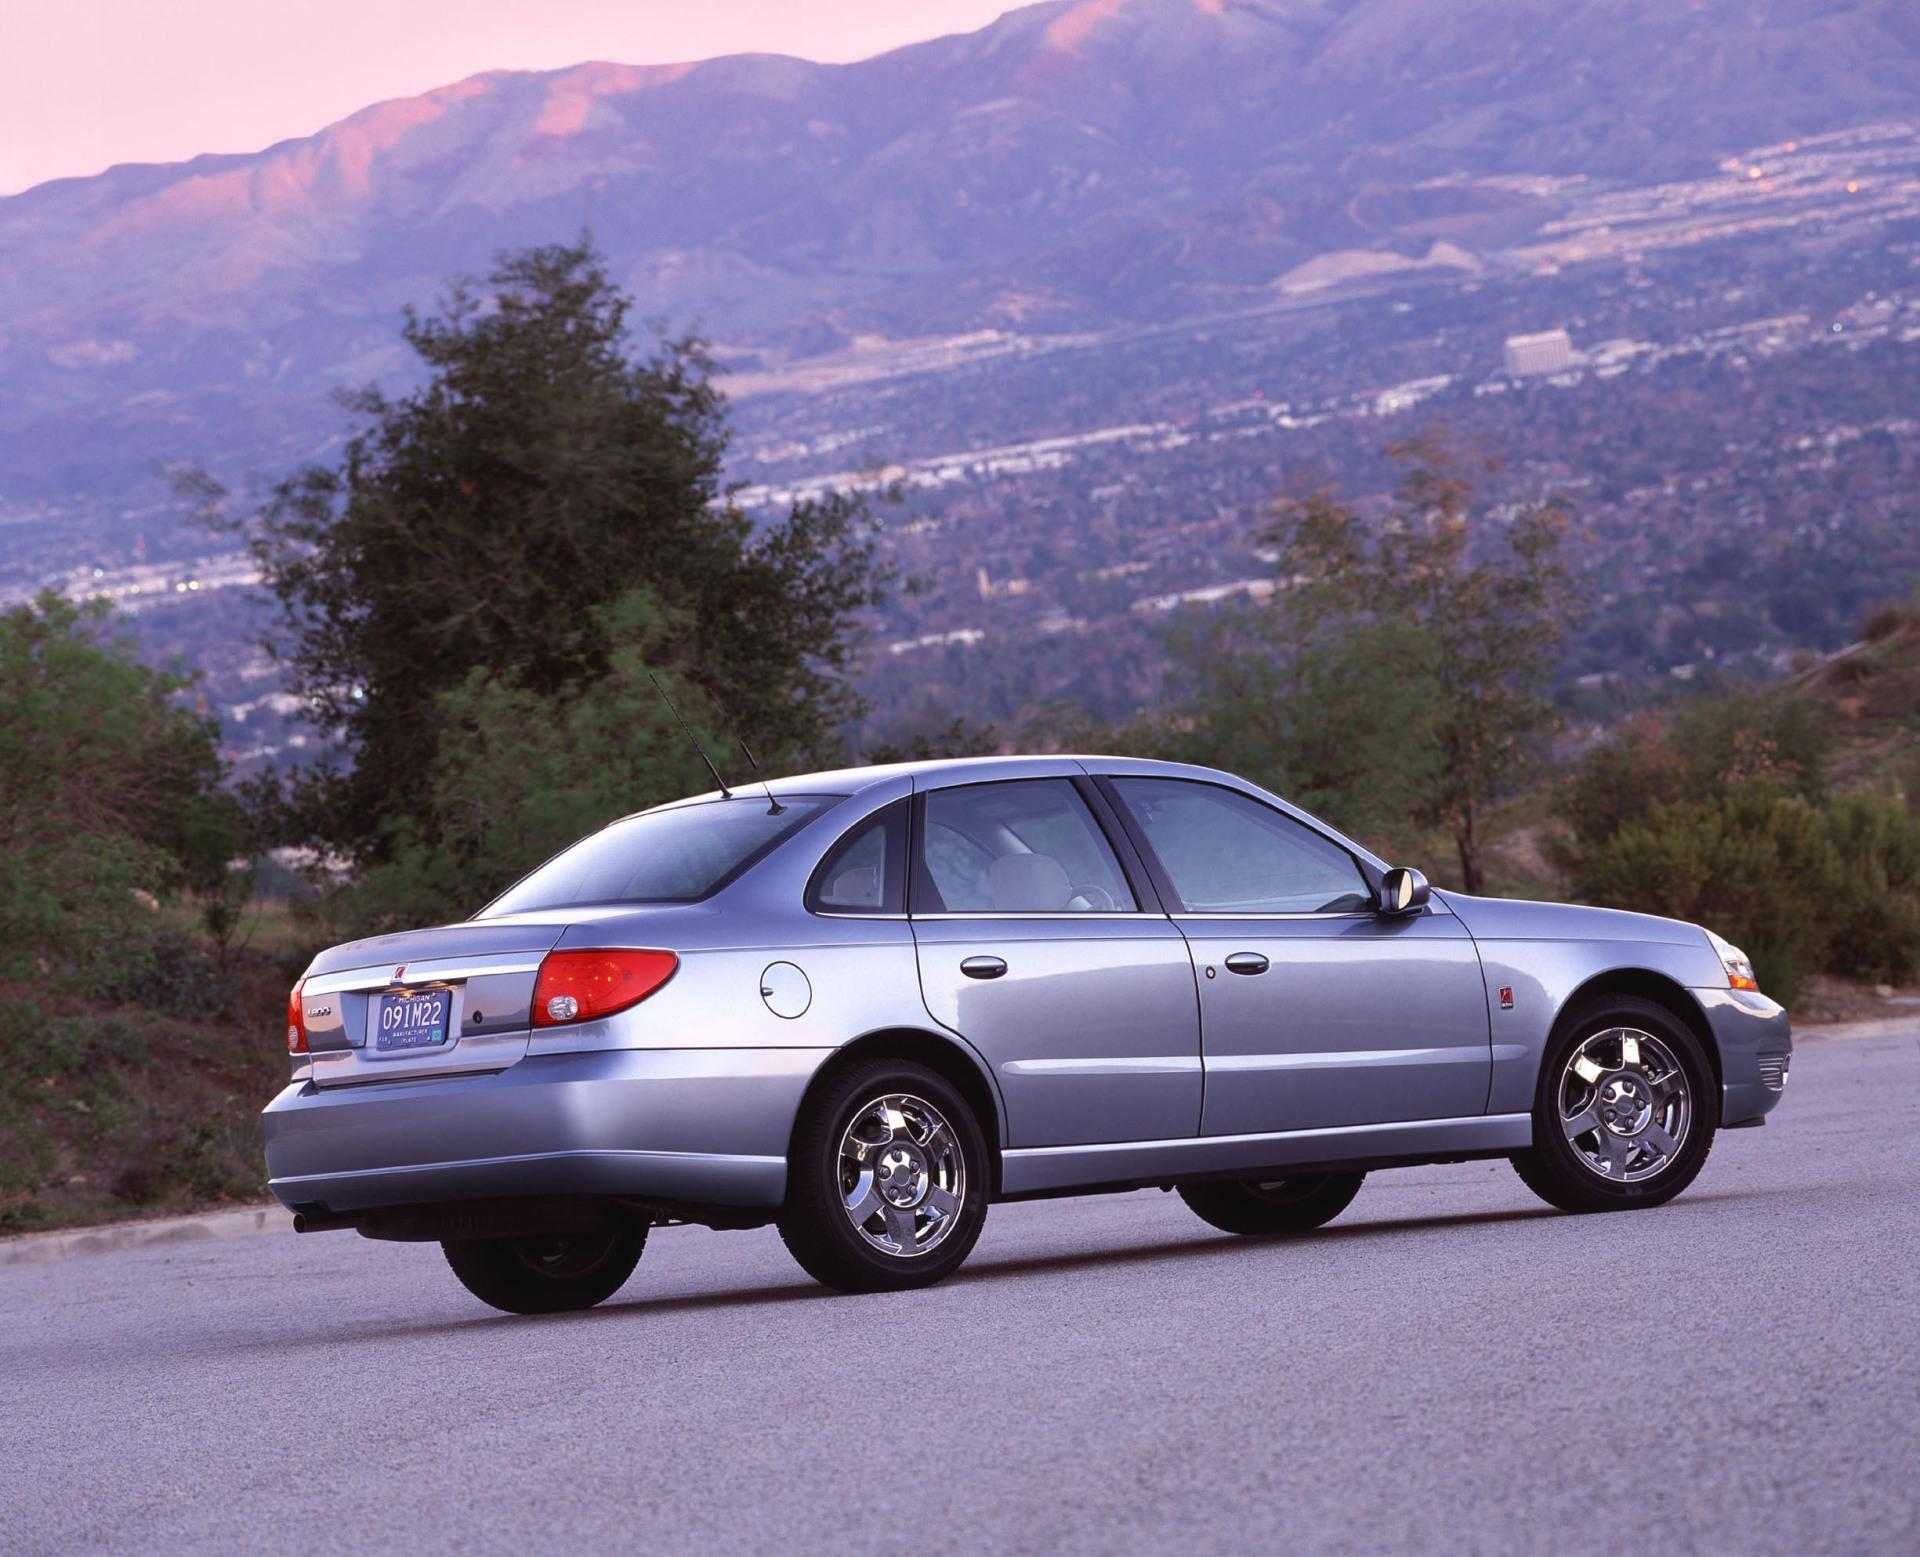 2003 saturn l series information and photos zombiedrive saturn l series 3 vanachro Images